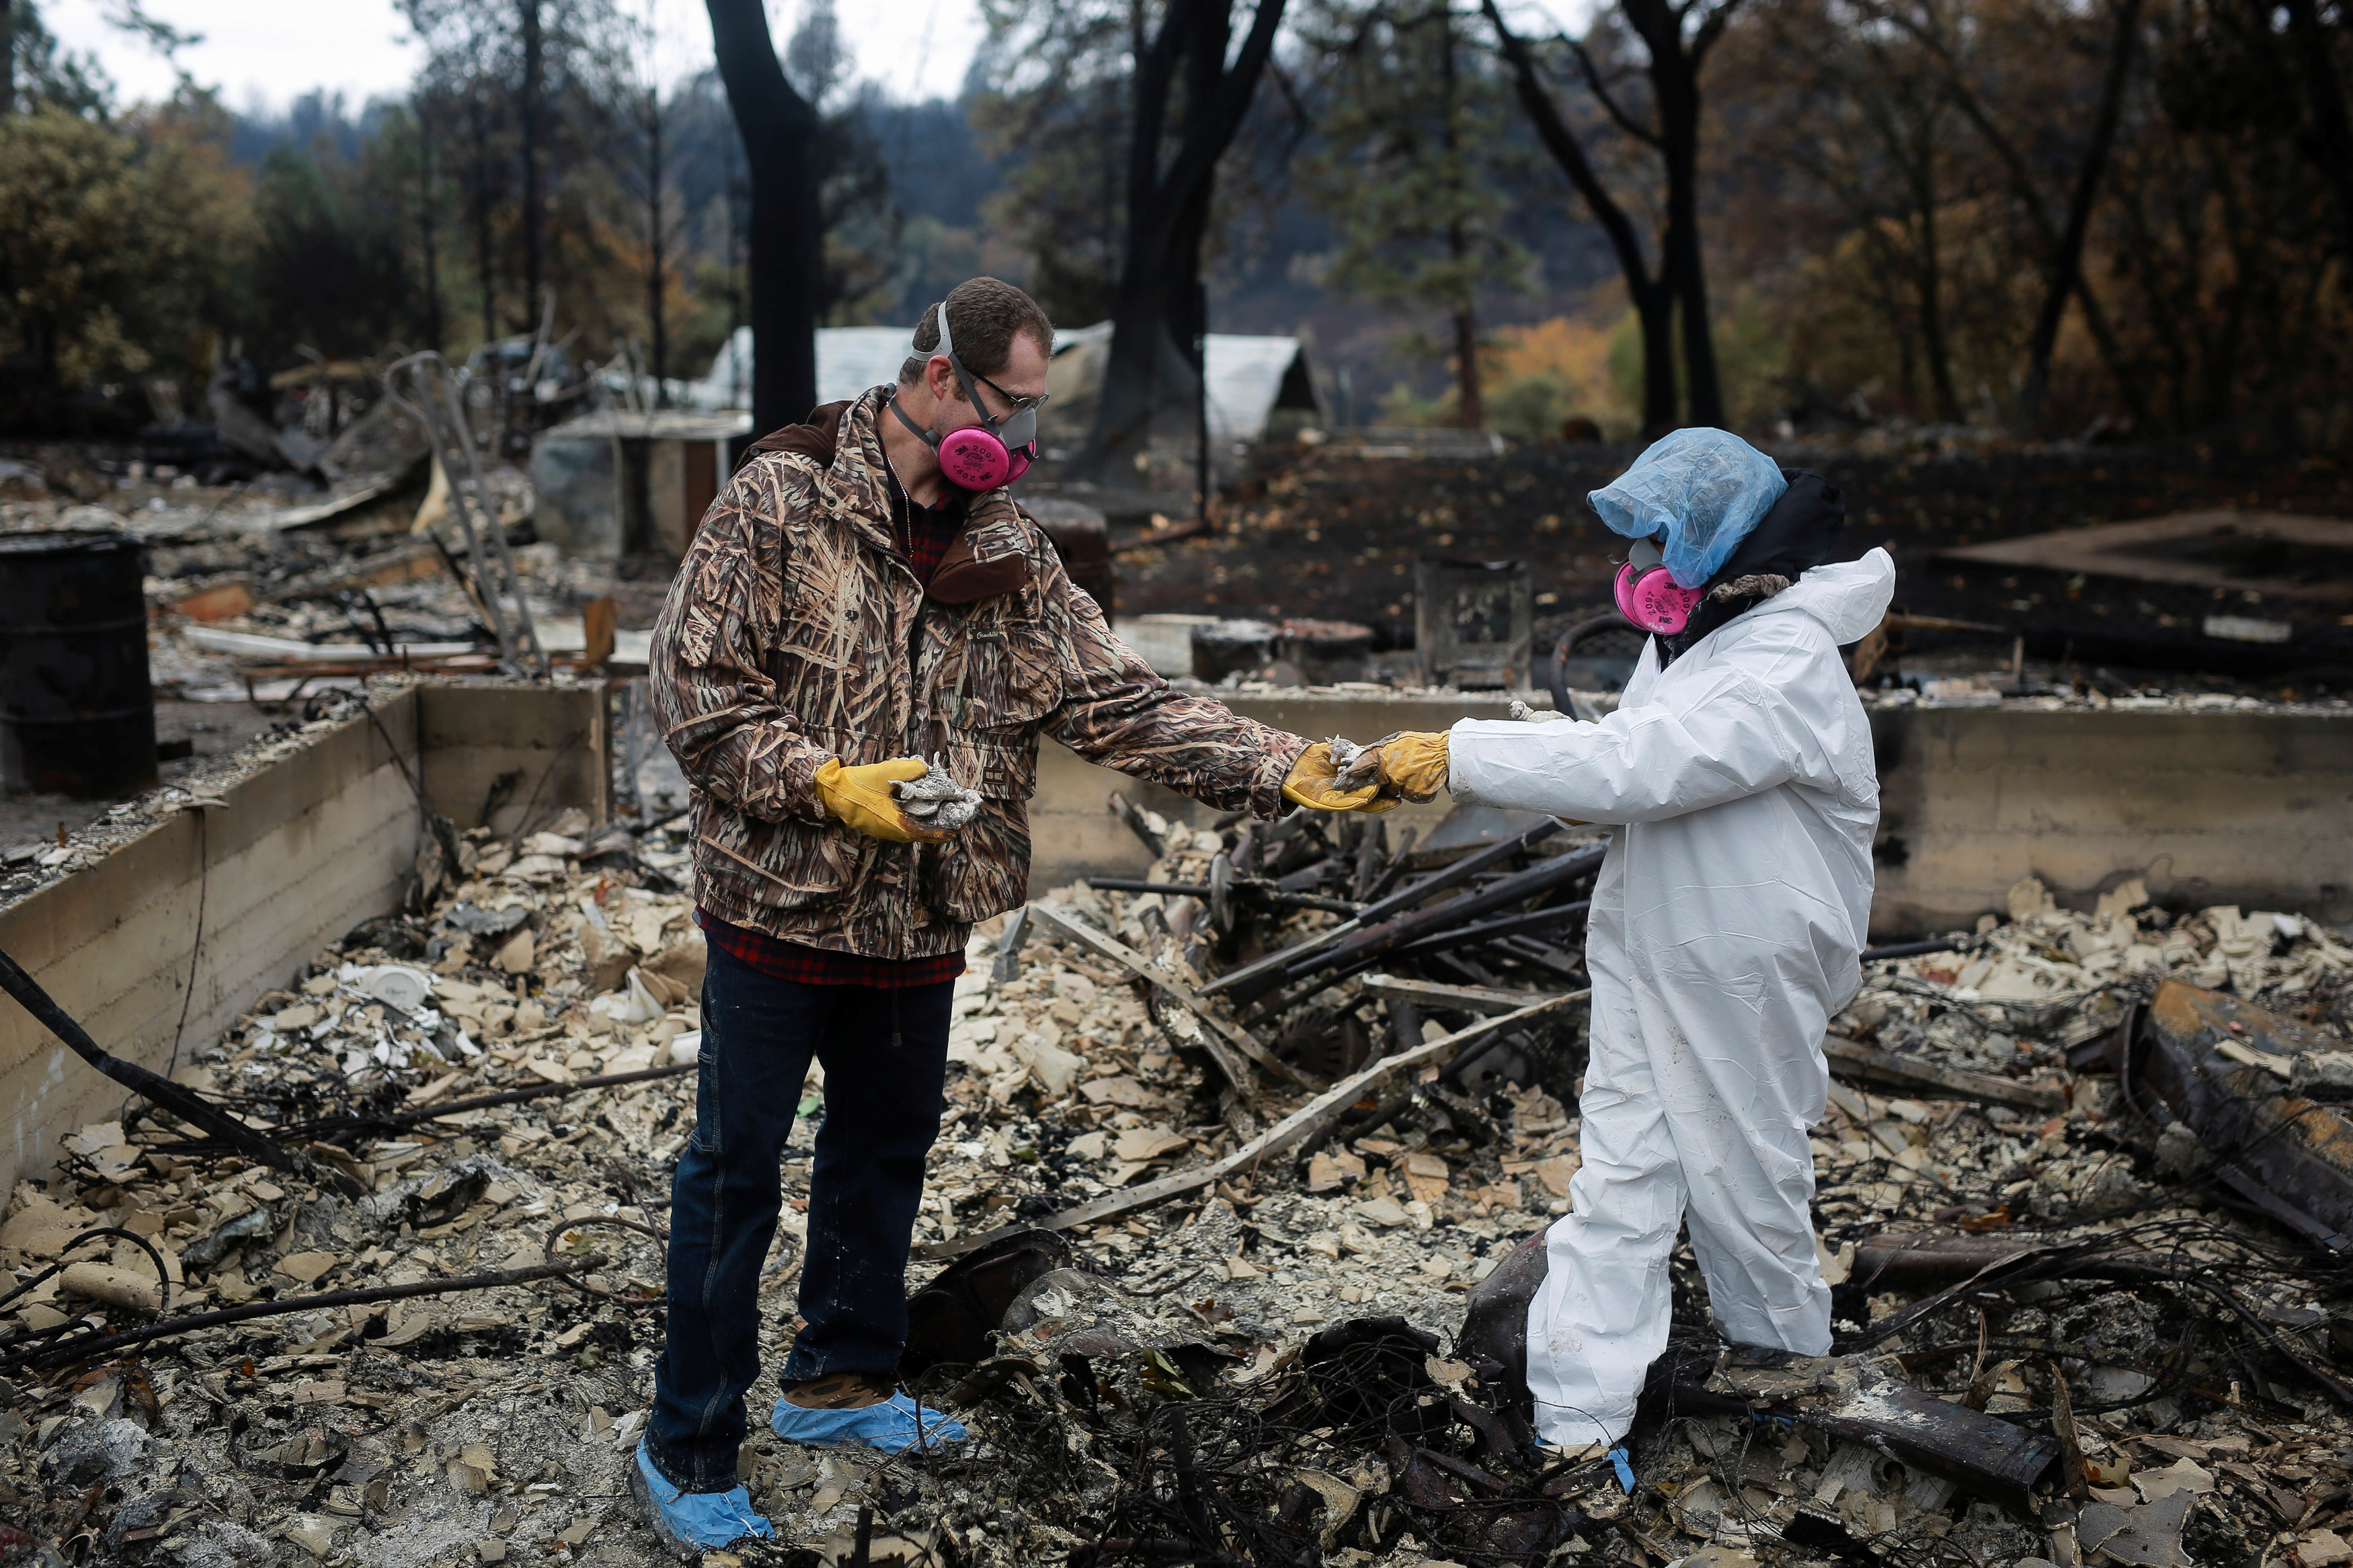 Vanthy Bizzle hands some small religious figurines to her husband Brett Bizzle in the remains of their home after returning for the first time since the Camp Fire forced them to evacuate in Paradise, California, U.S. November 22, 2018. REUTERS/Elijah Nouvelage